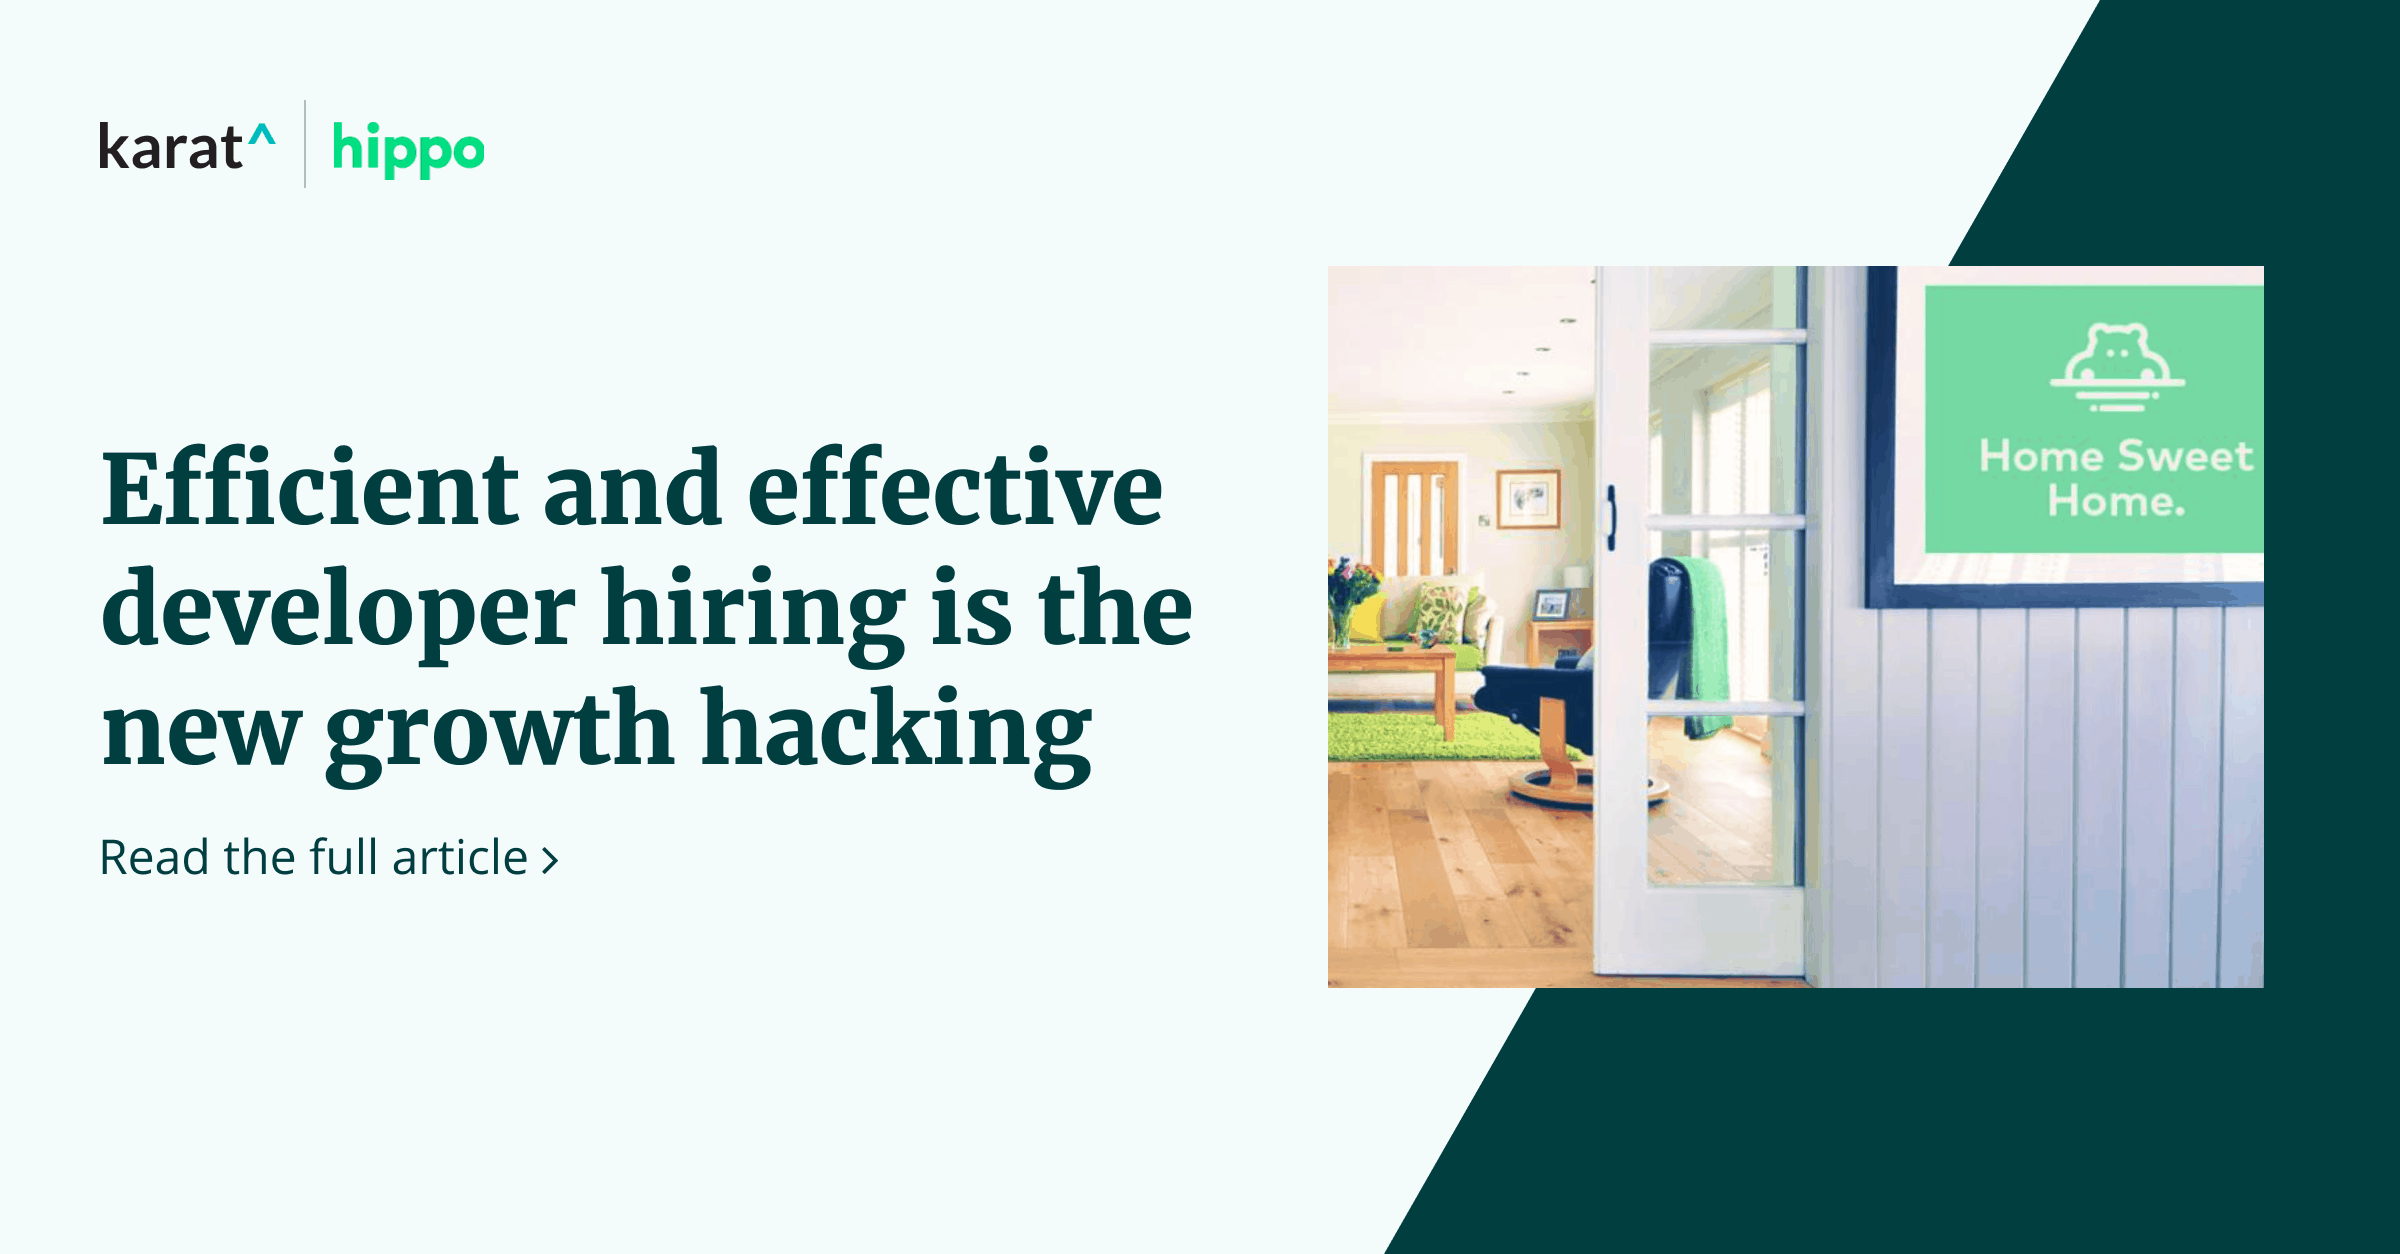 Hippo Insurance: Efficient and effective developer hiring is the new growth hacking